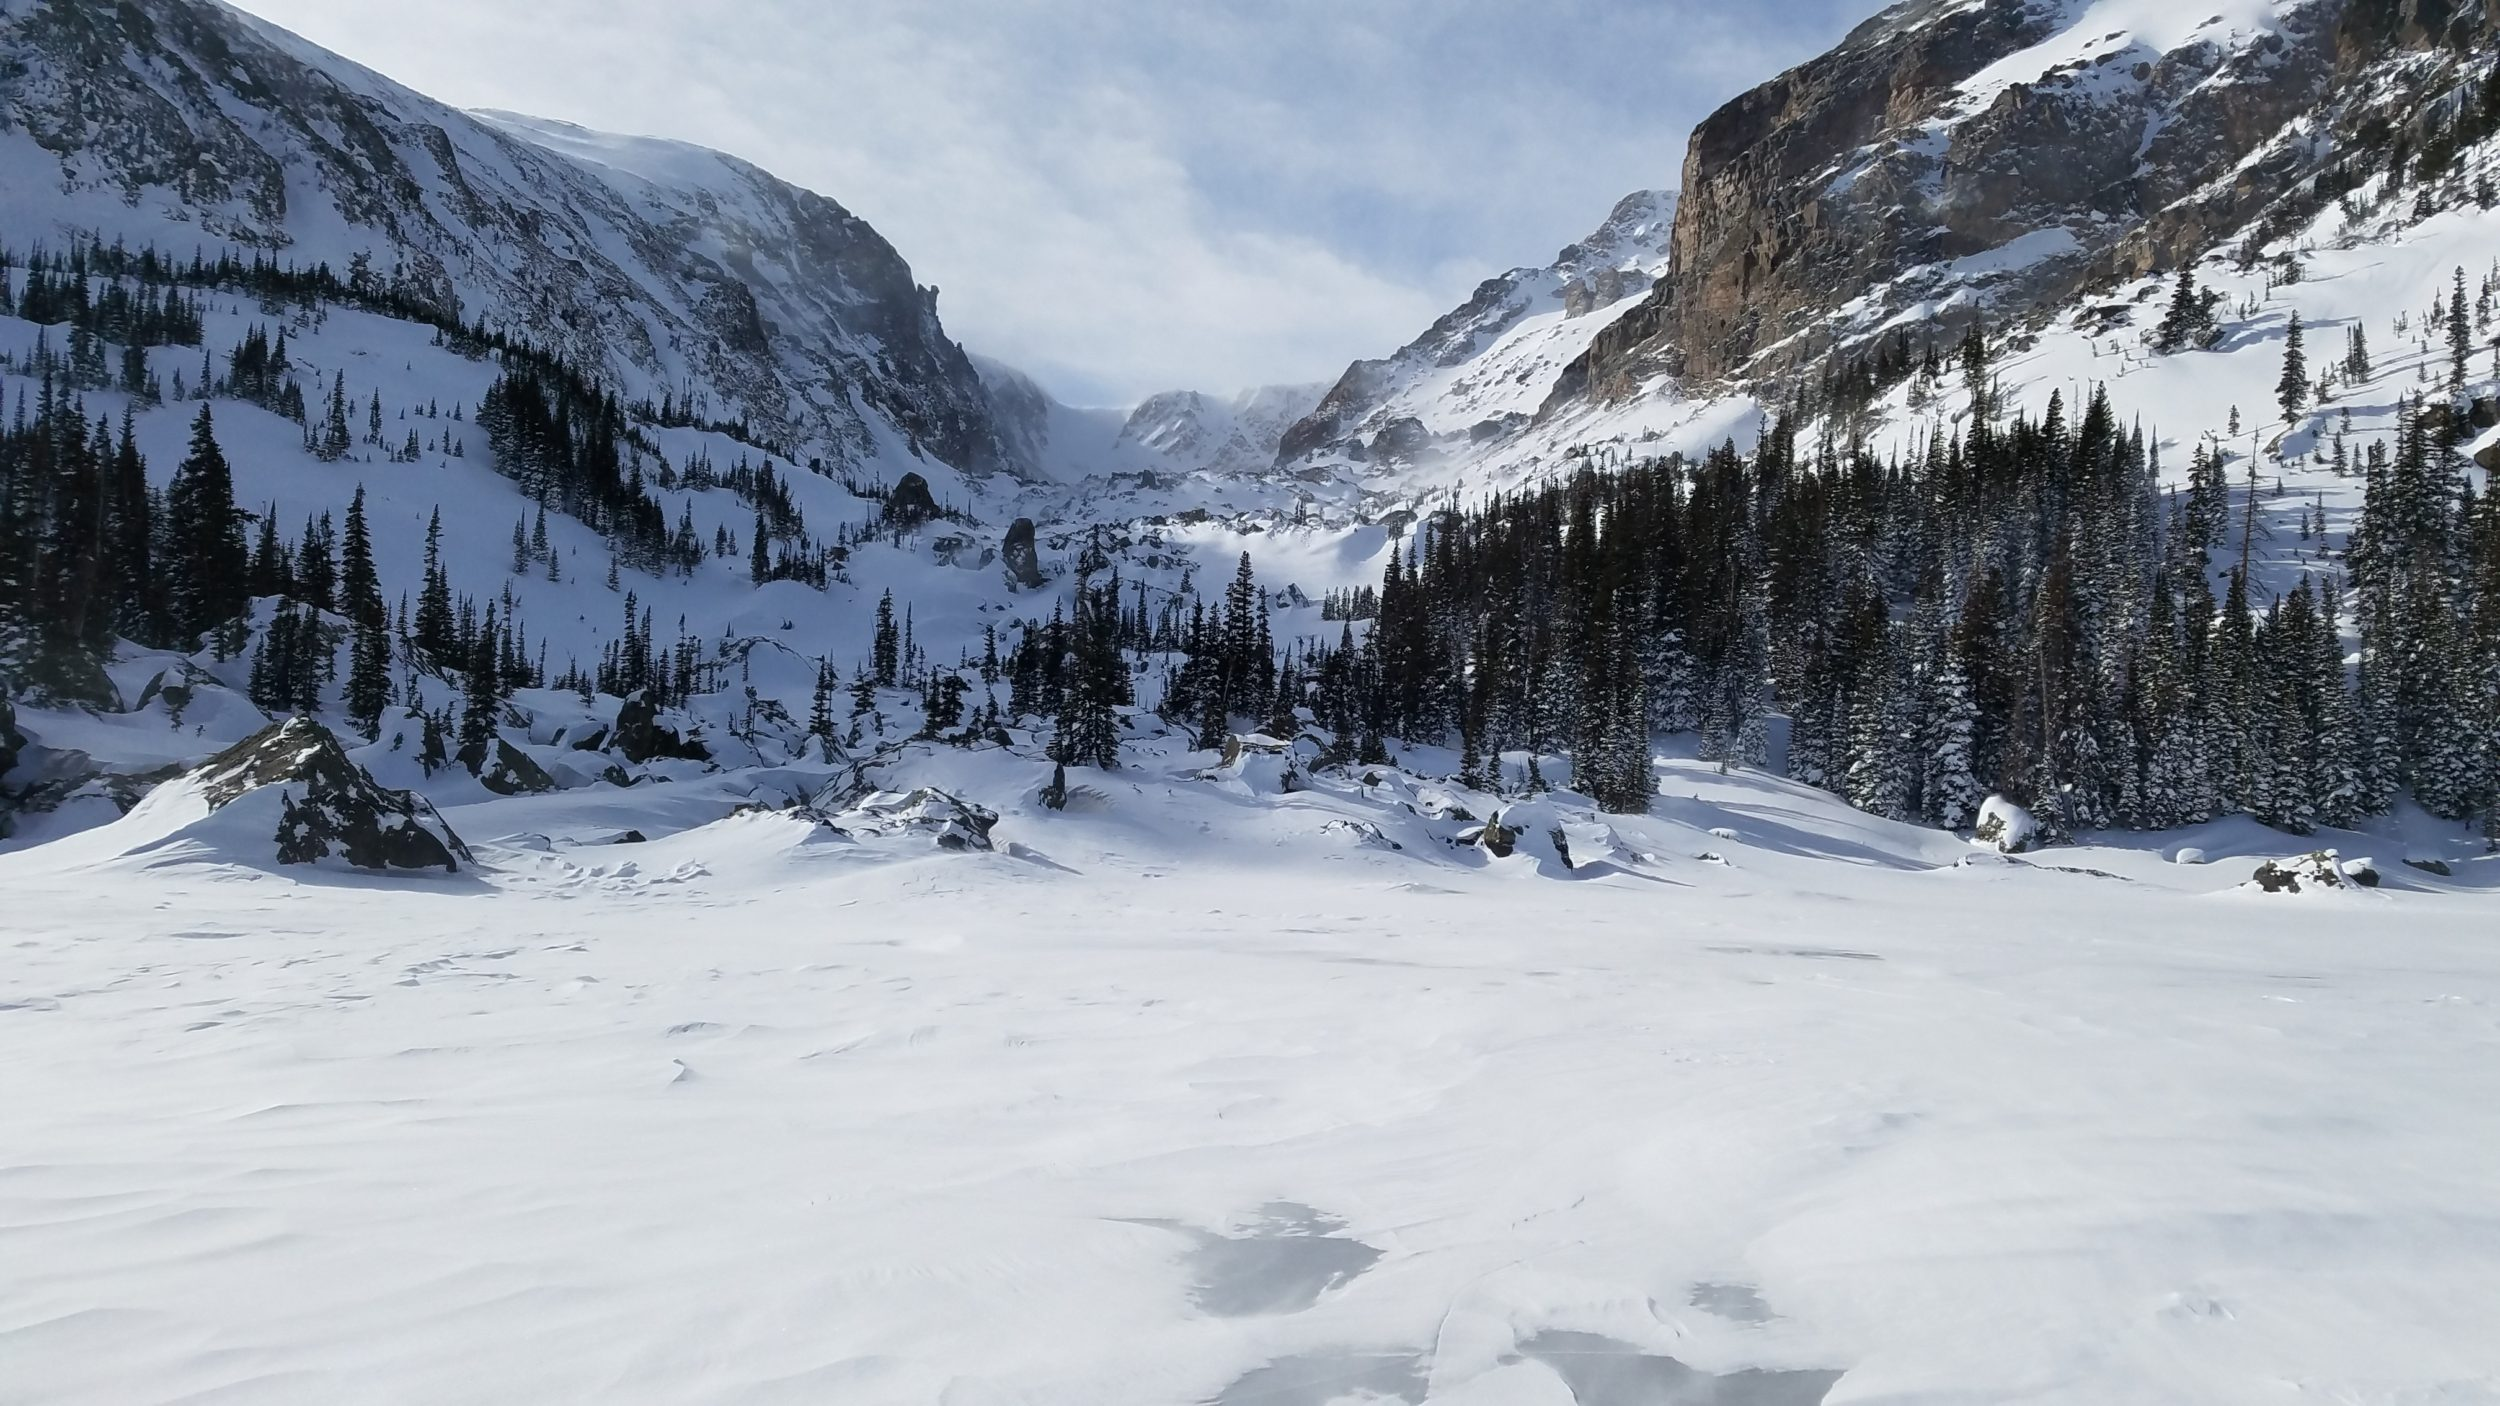 Standing on frozen Lake Haiyaha looking into Chaos Canyon